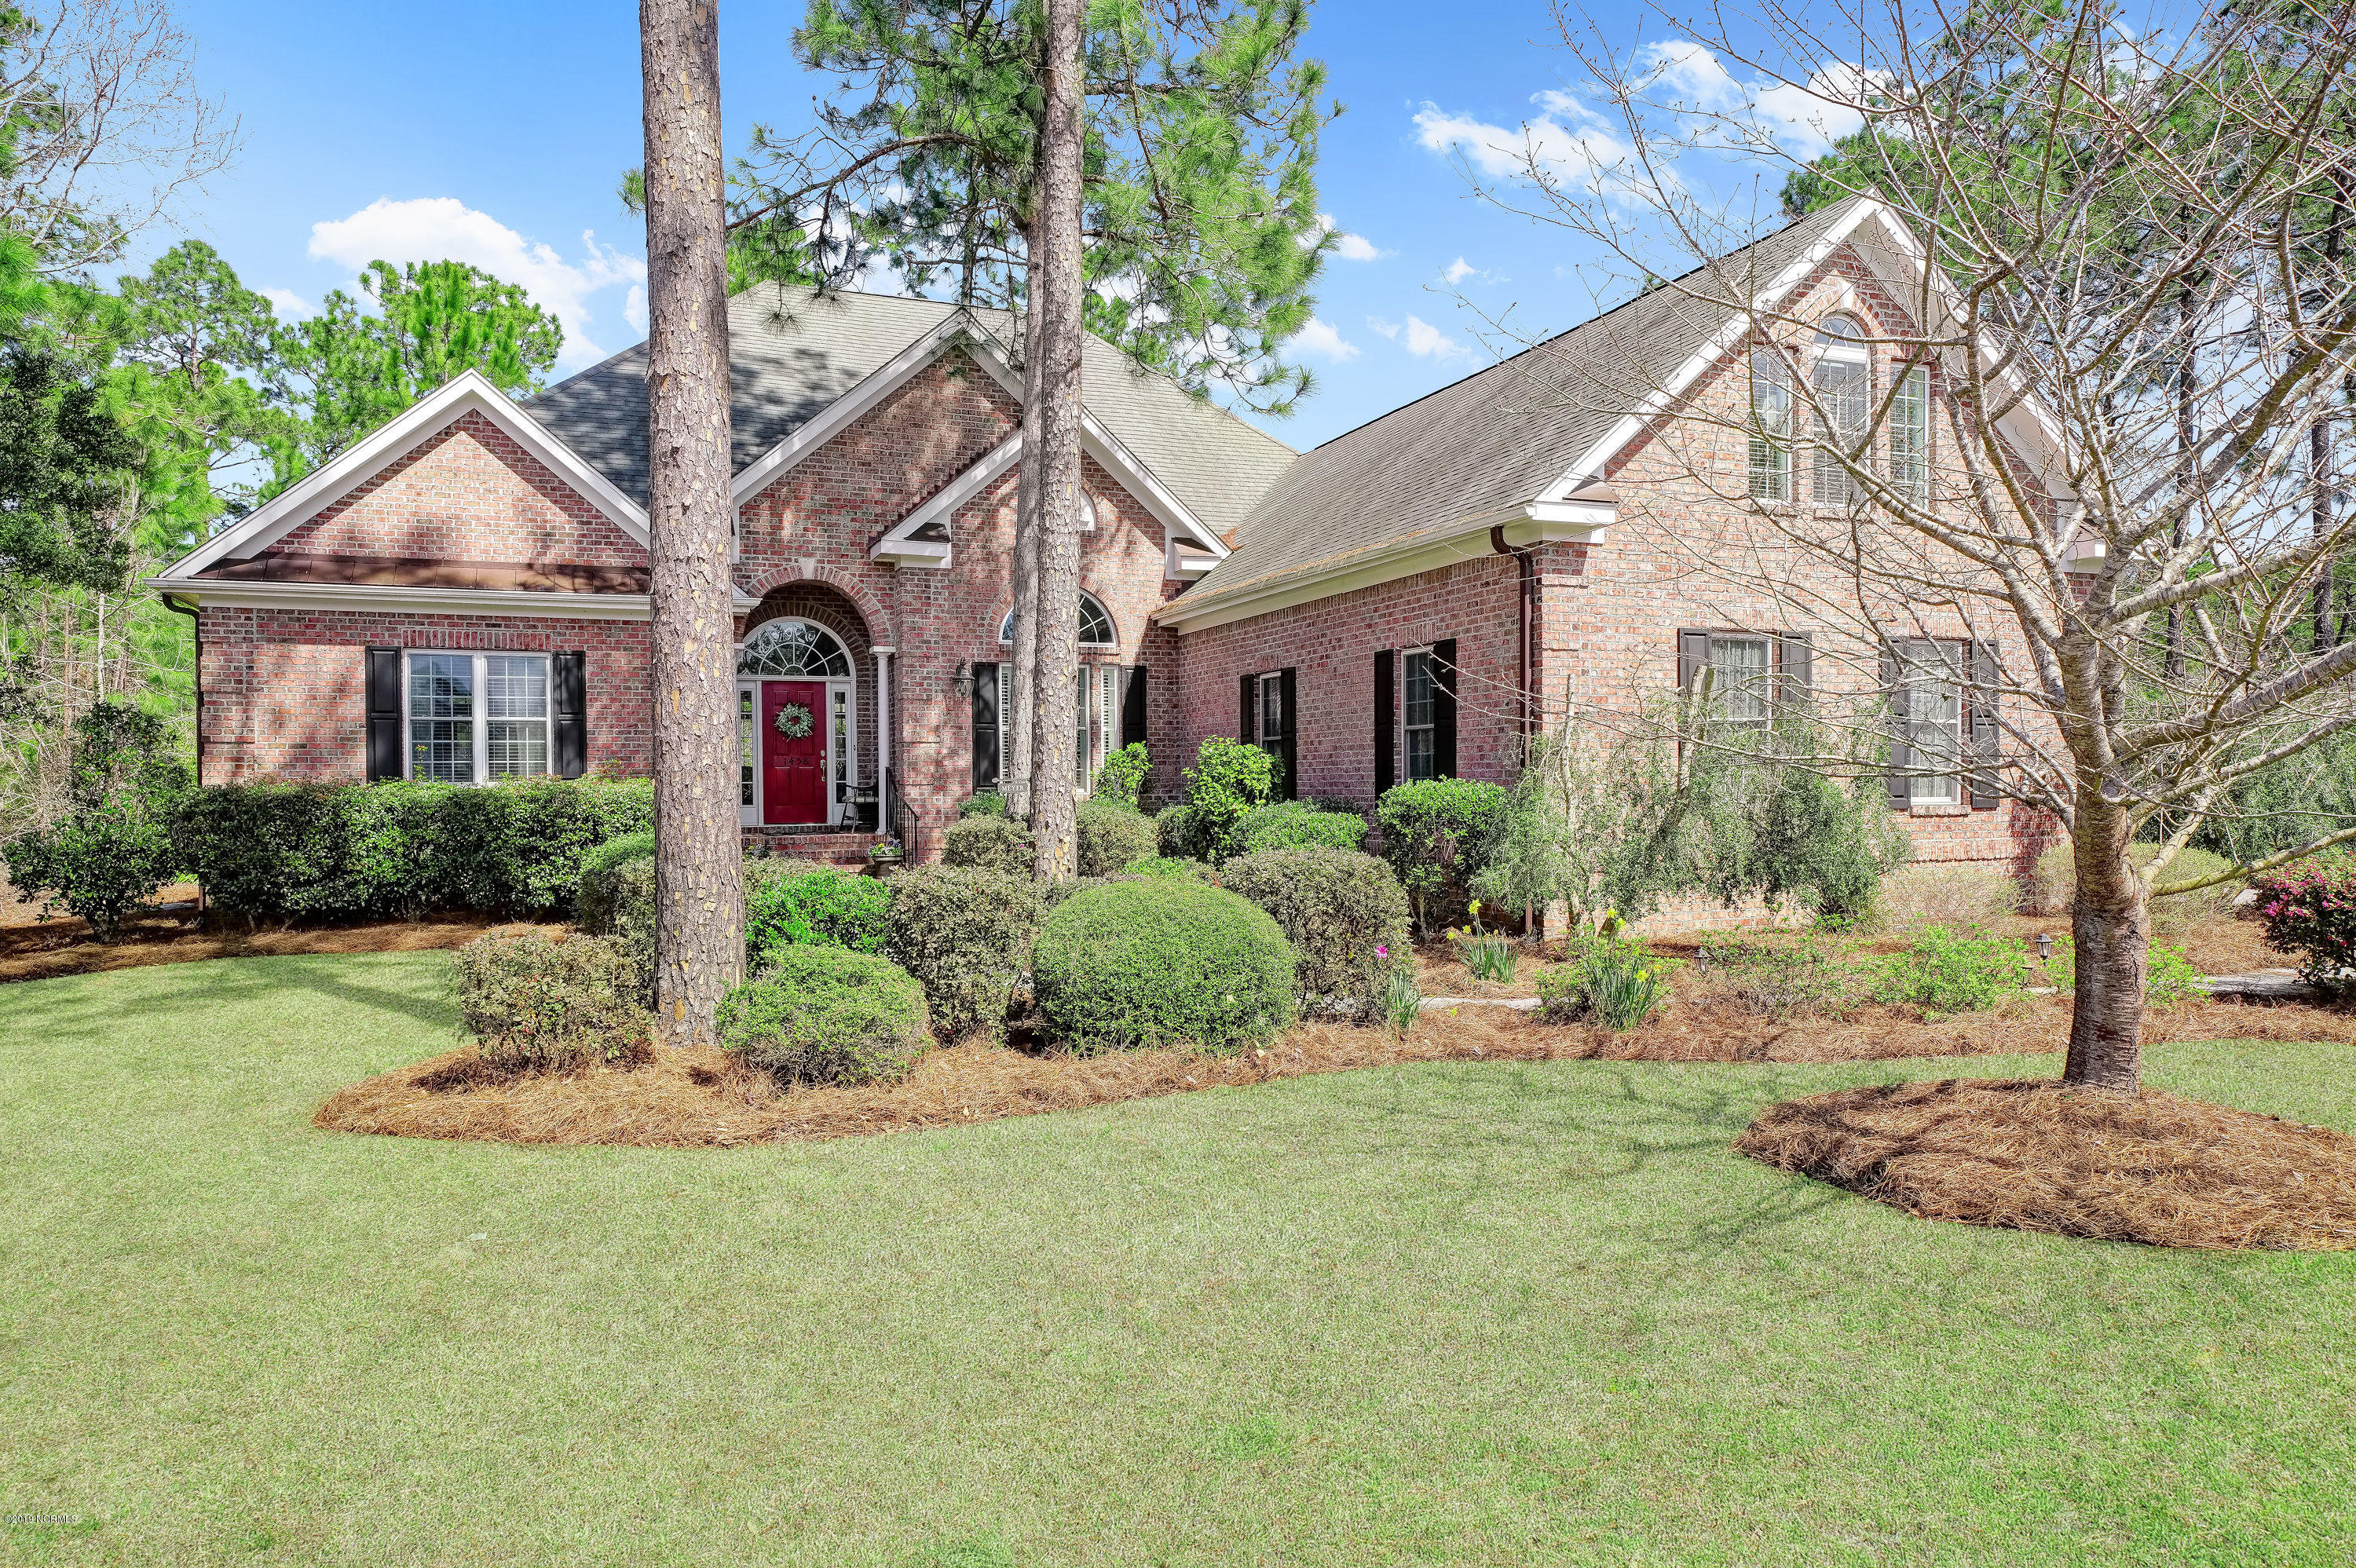 1458 Creeping Forest Drive Bolivia, NC 28422